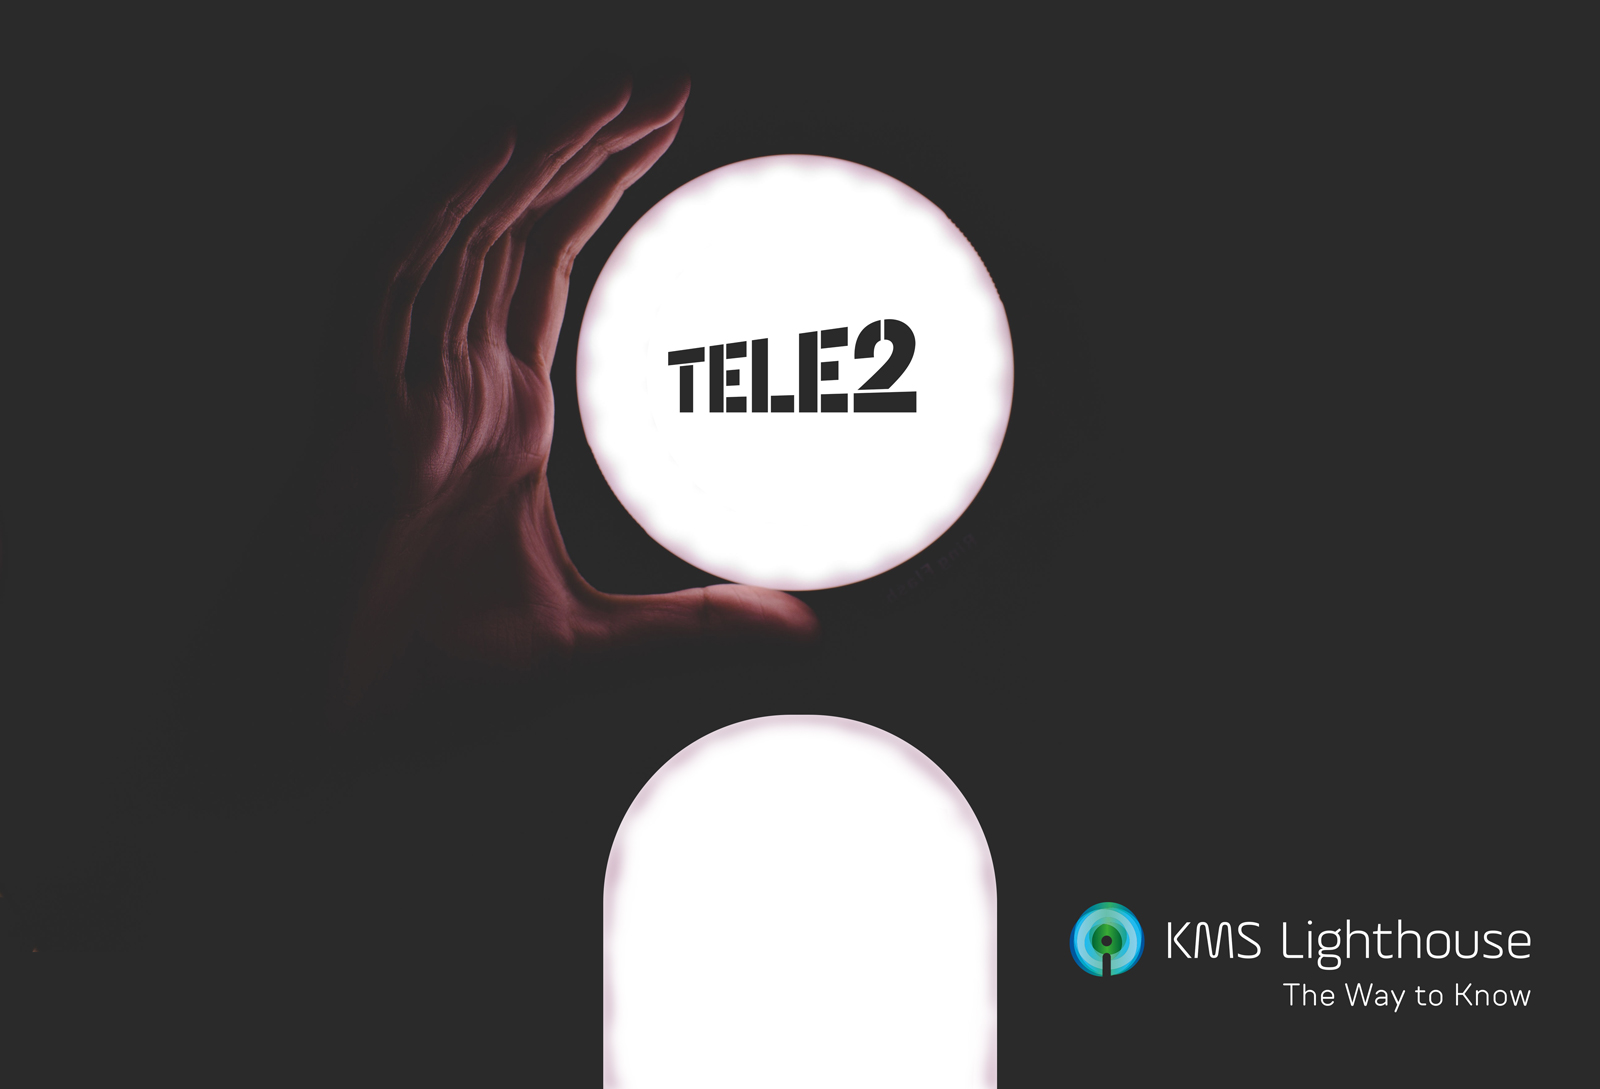 Tele2 has implemented a knowledge management system using KMS Lighthouse in partnership with CROC and DIS Group